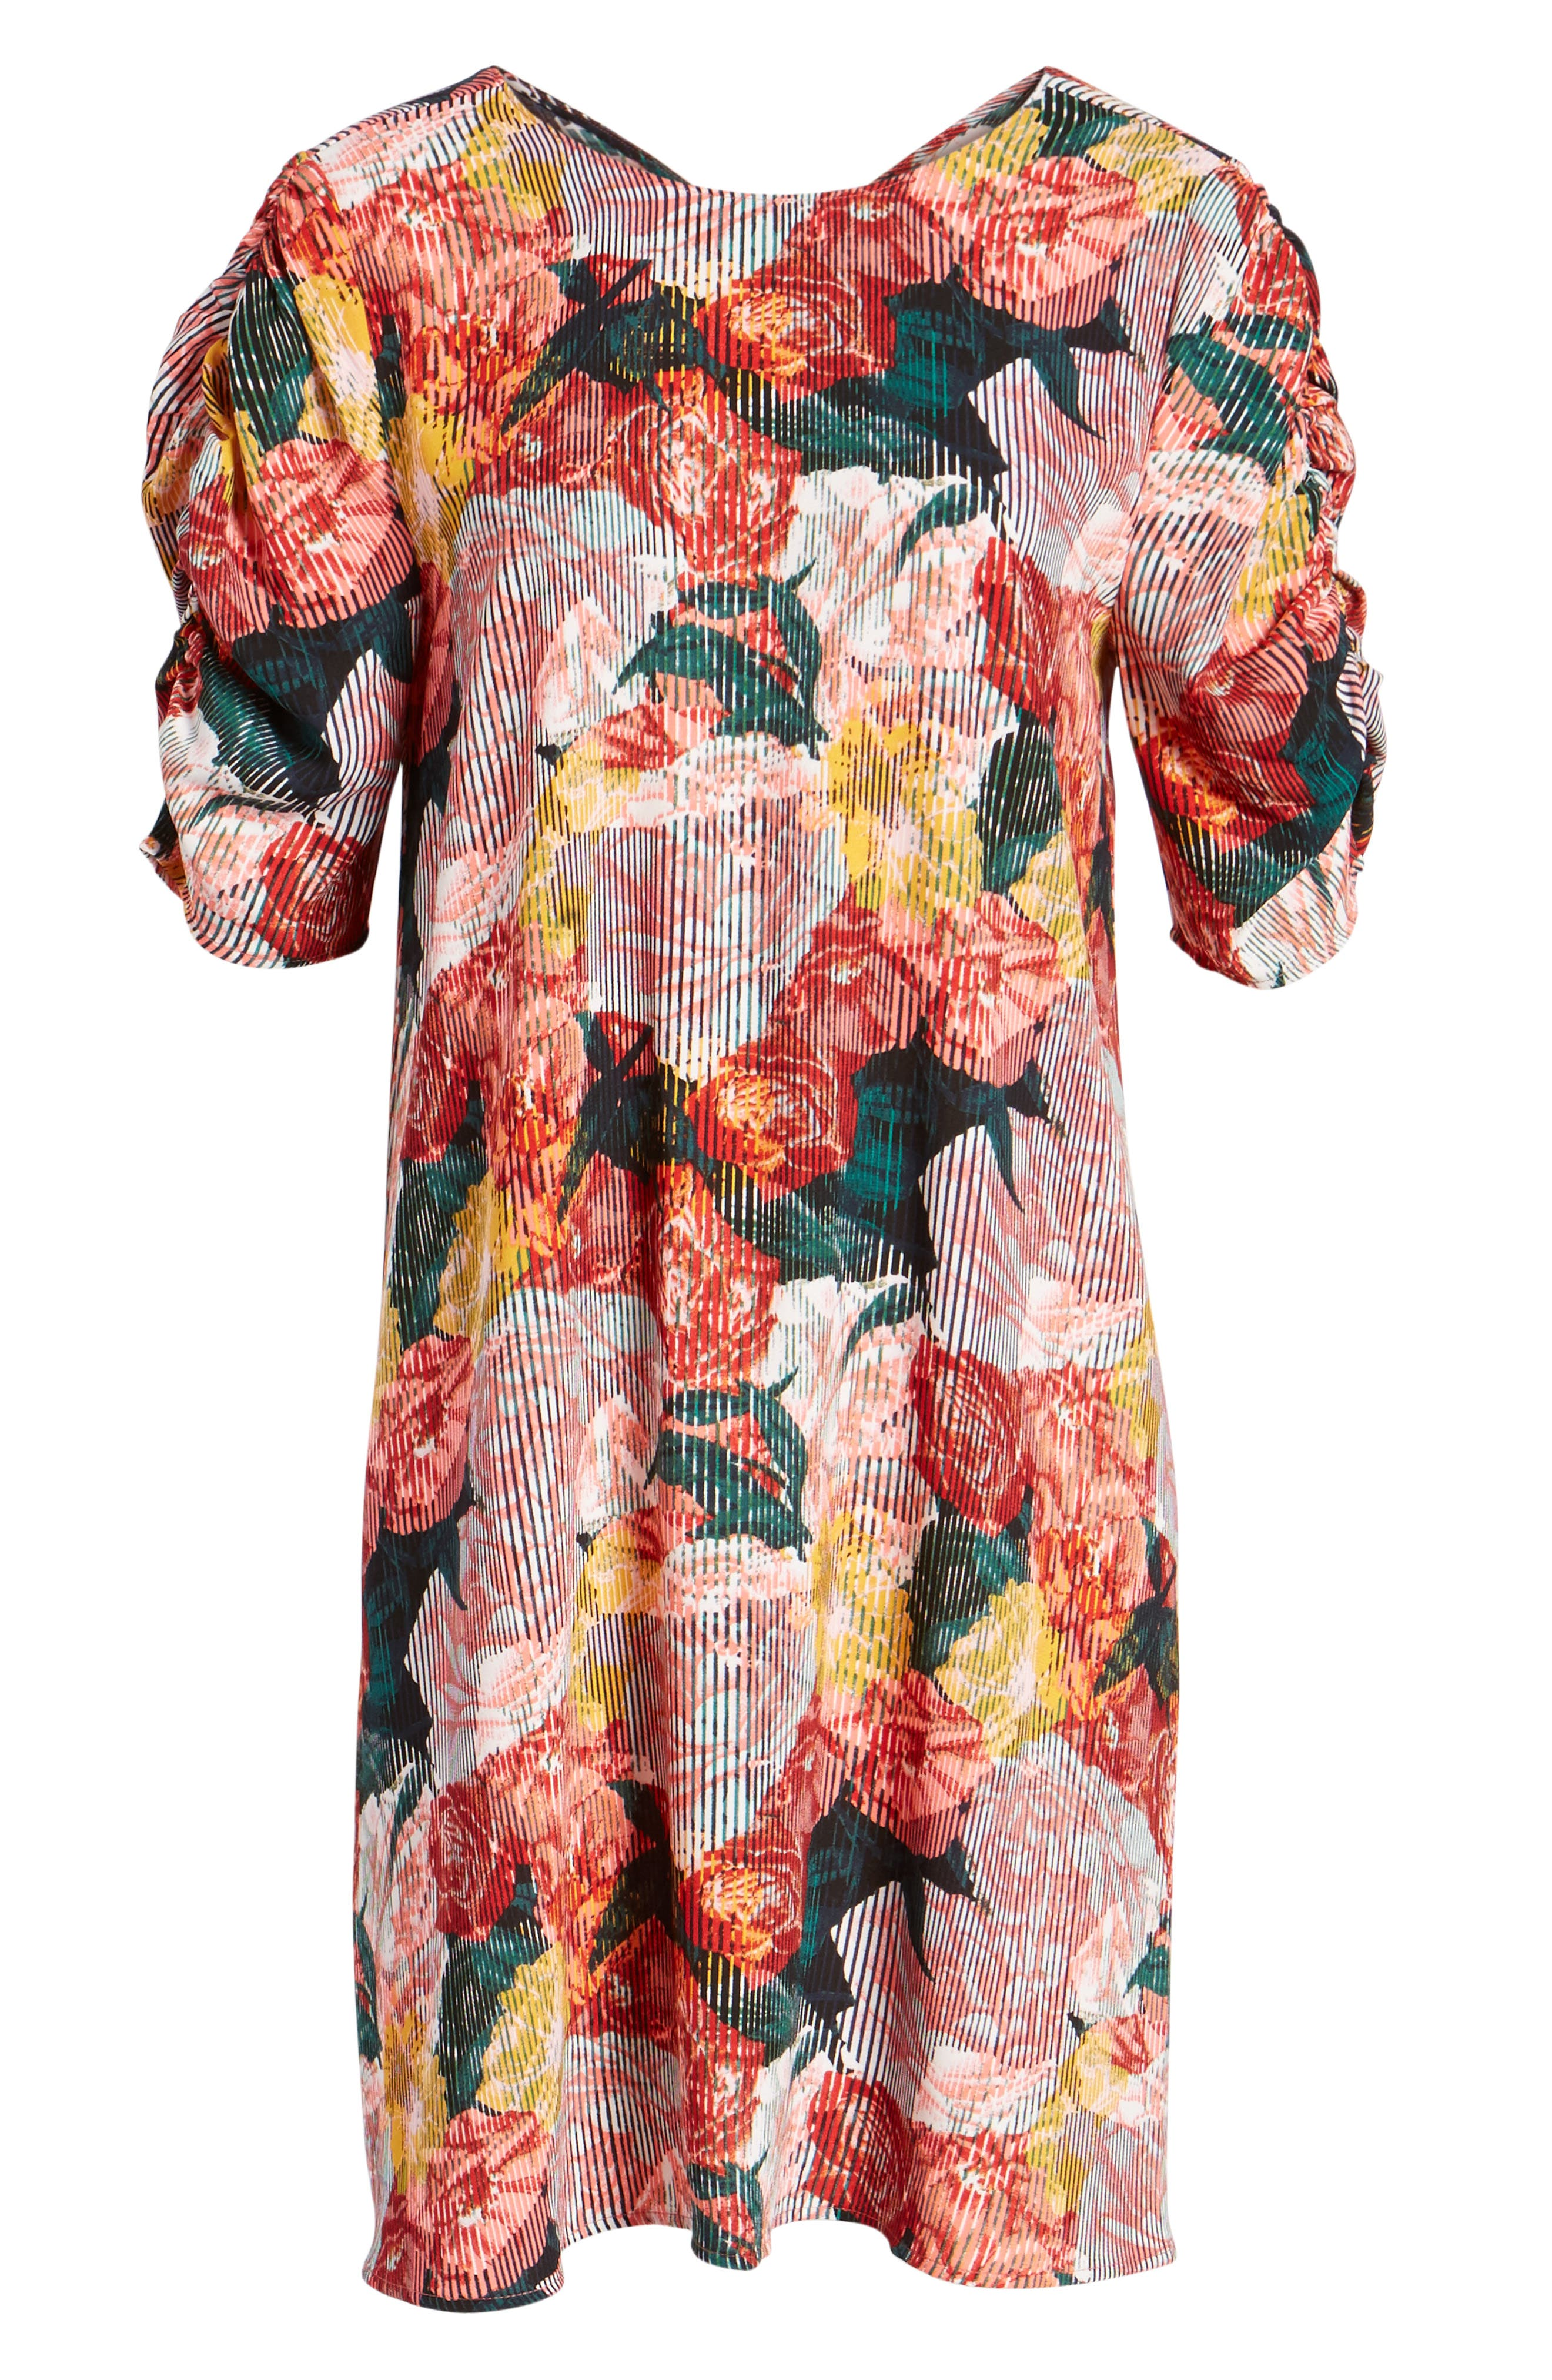 Ruched Sleeve Crepe Dress,                             Alternate thumbnail 6, color,                             Coral Fragment Floral